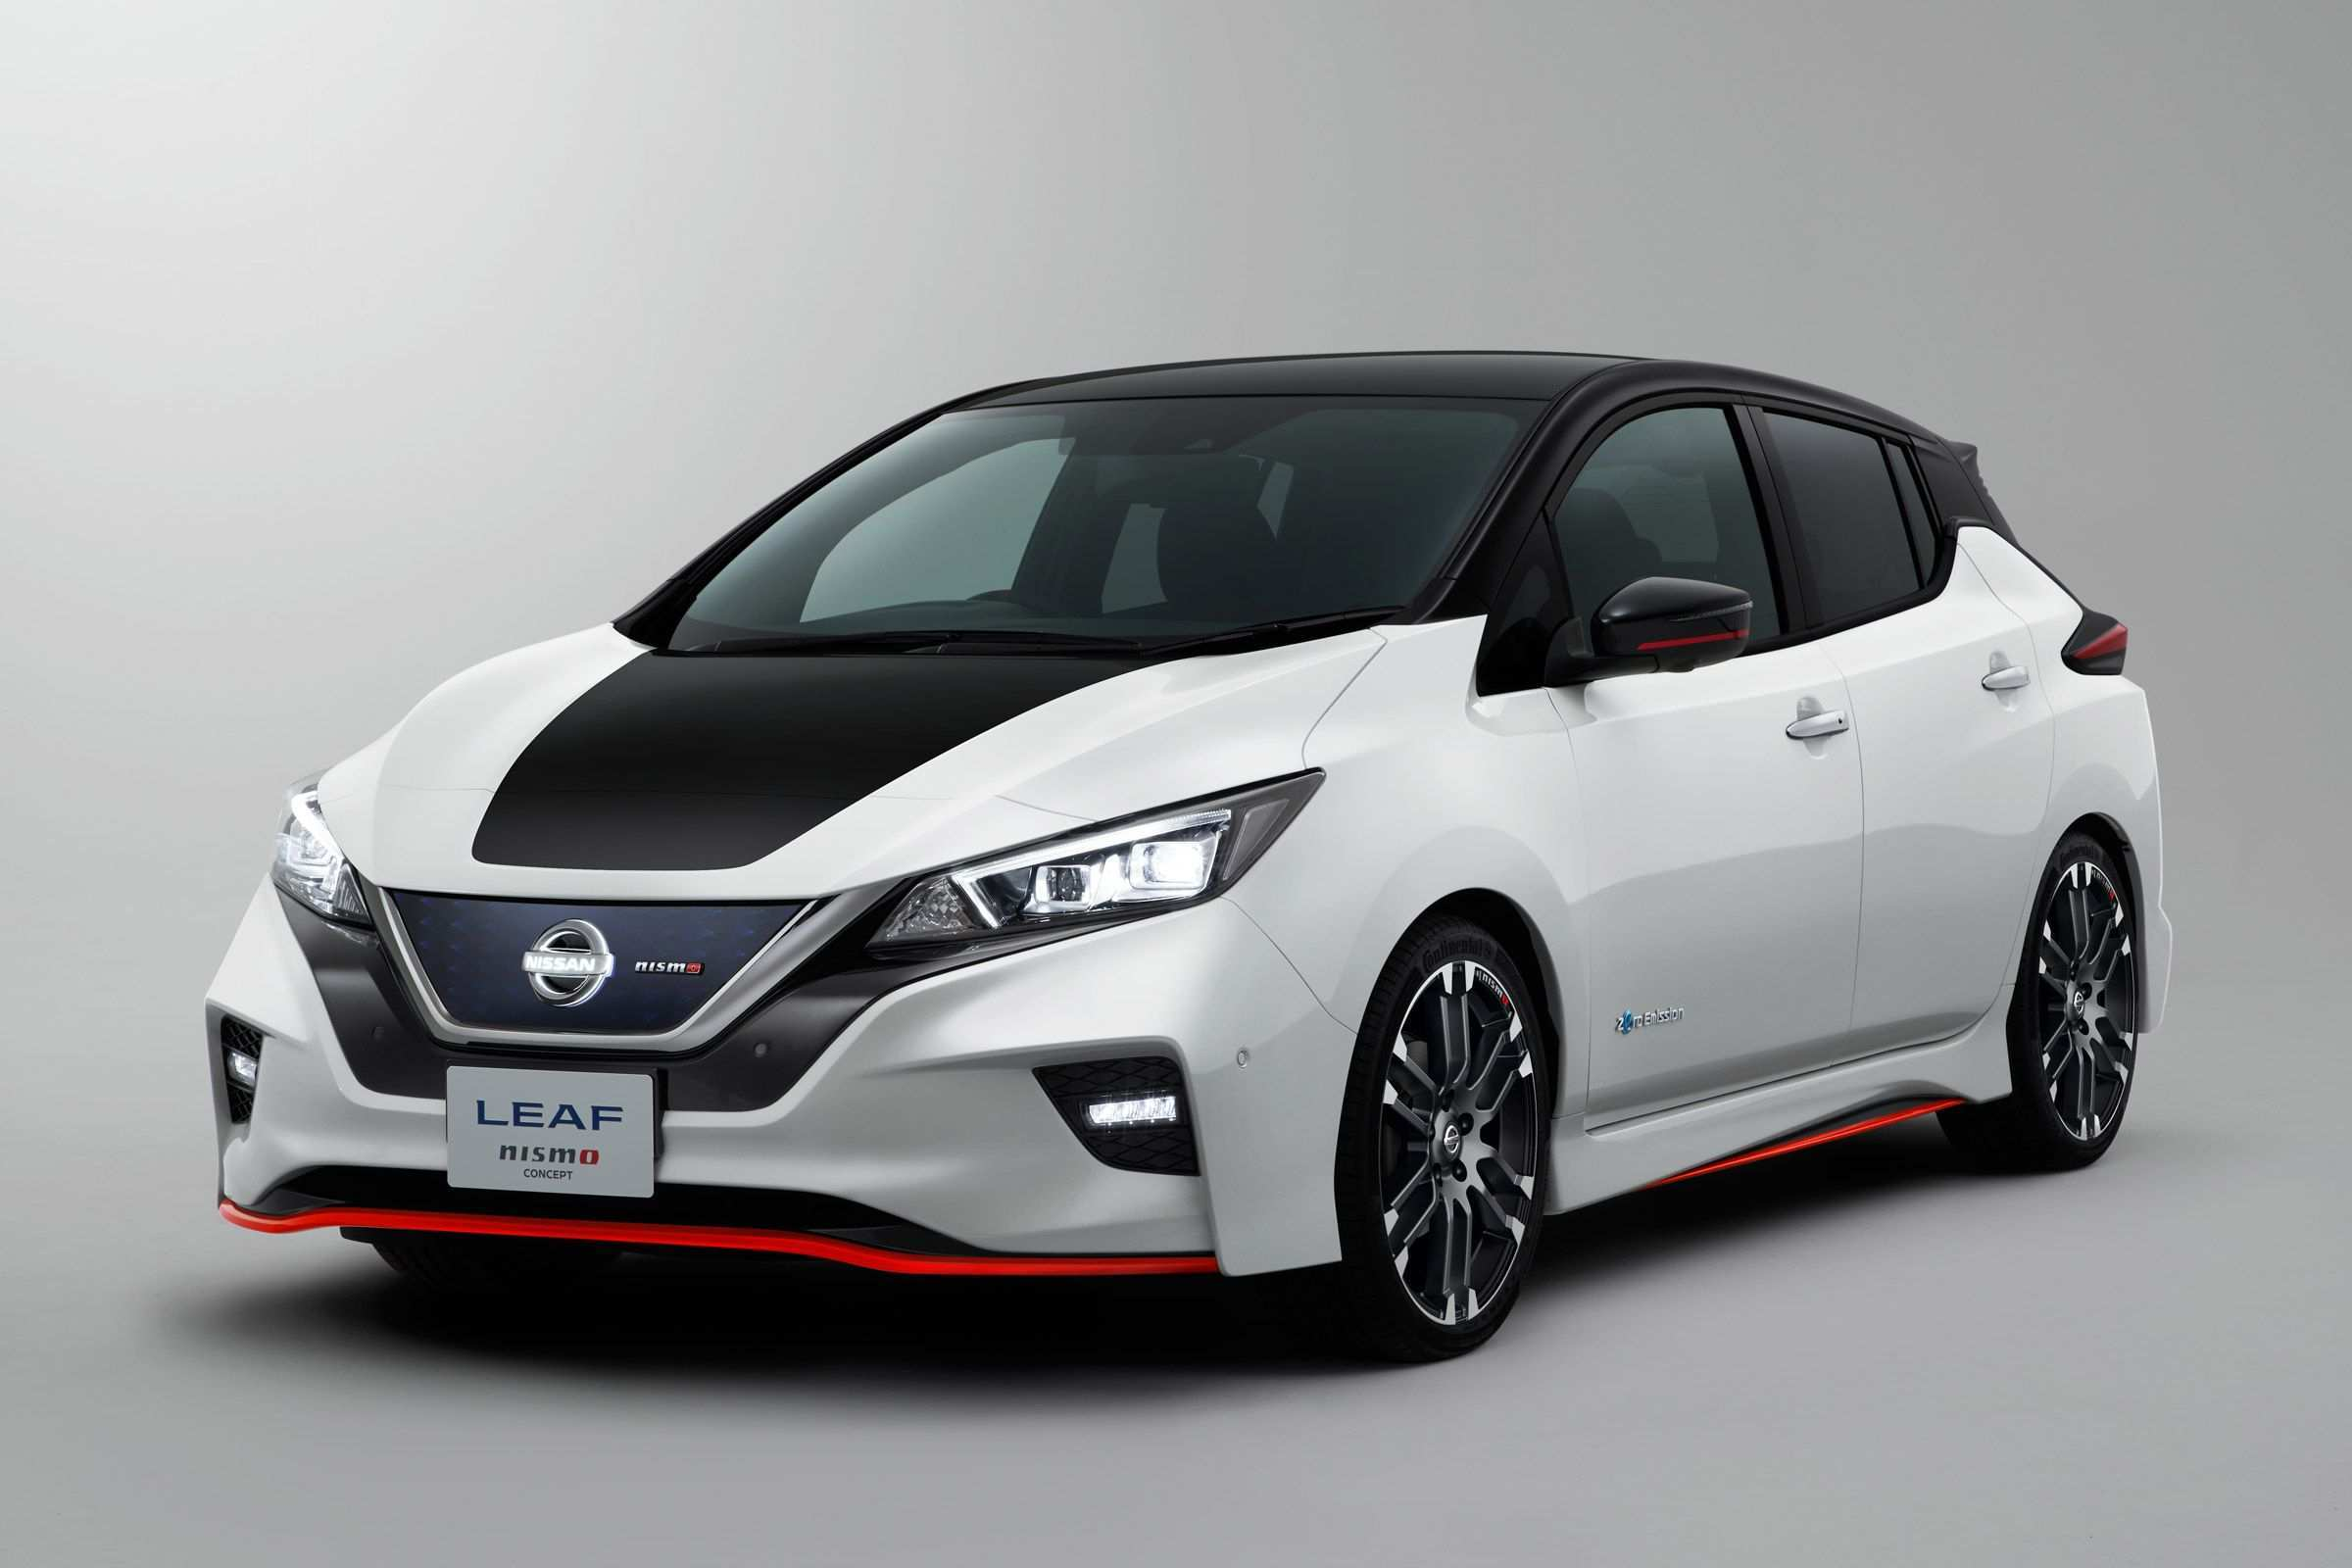 56 All New 2020 Nissan Leaf Range Release